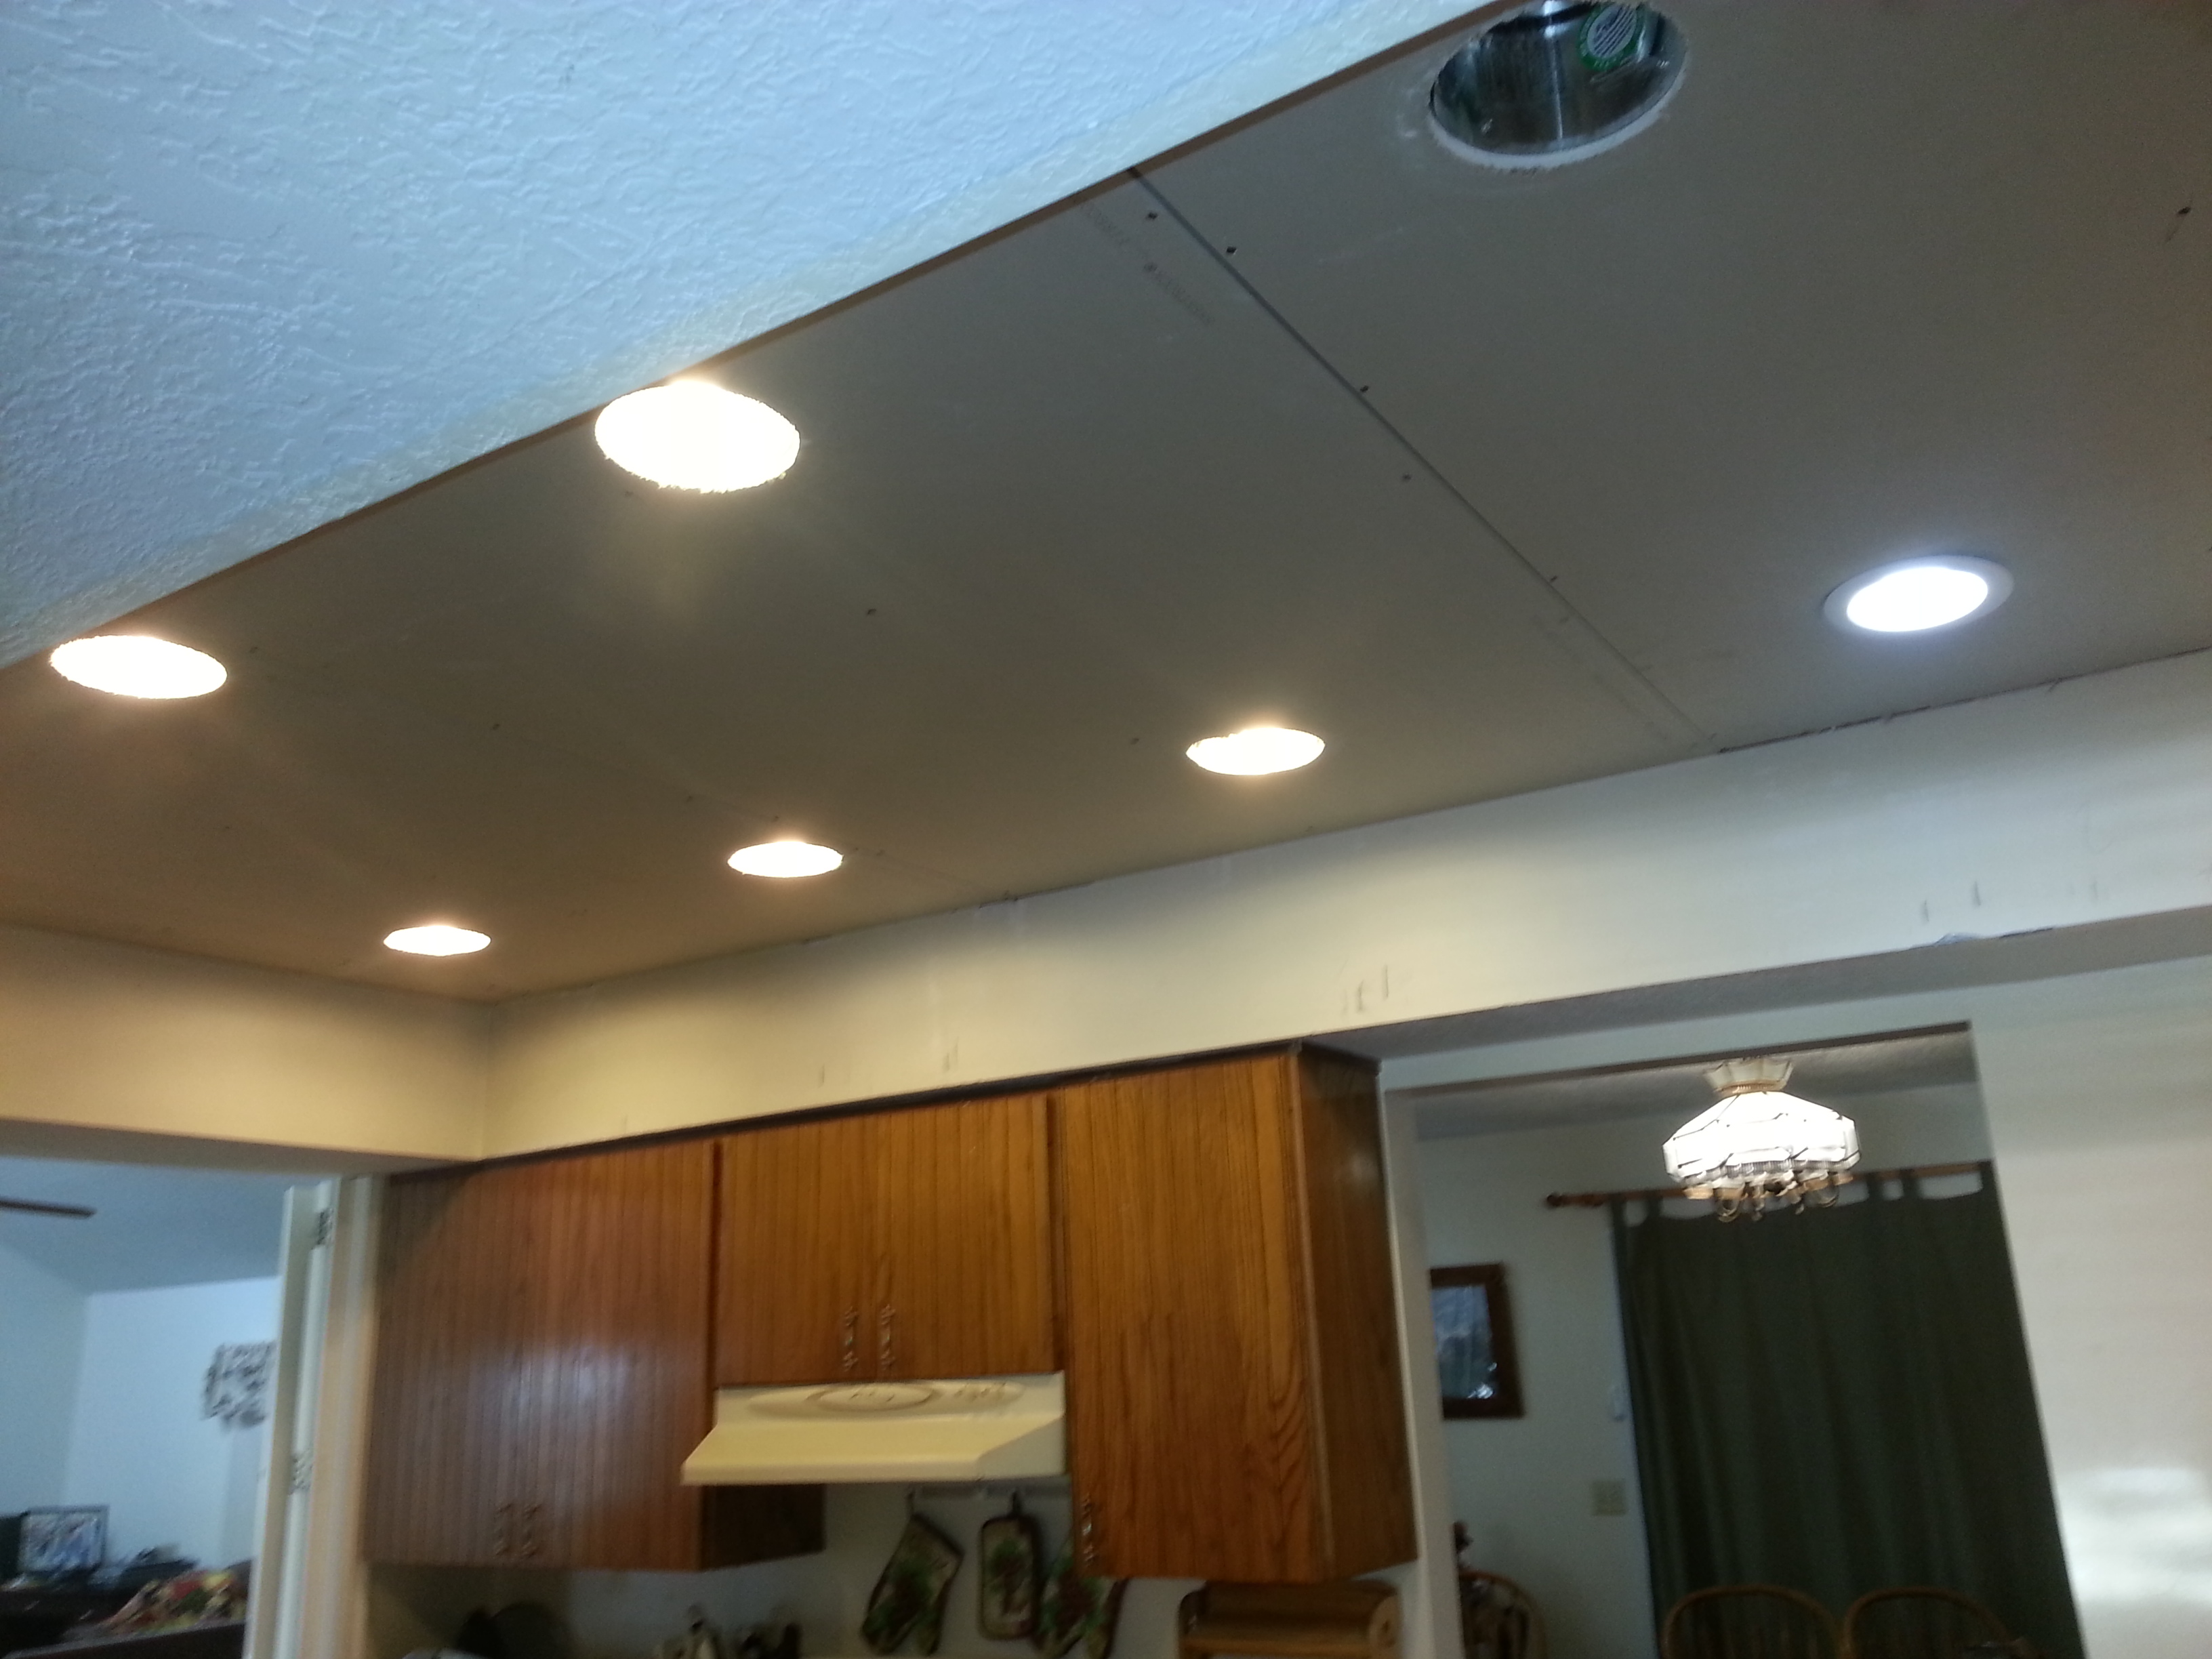 Fluorescent Light Cover Replacement Led Recessed Lights Drop Ceiling